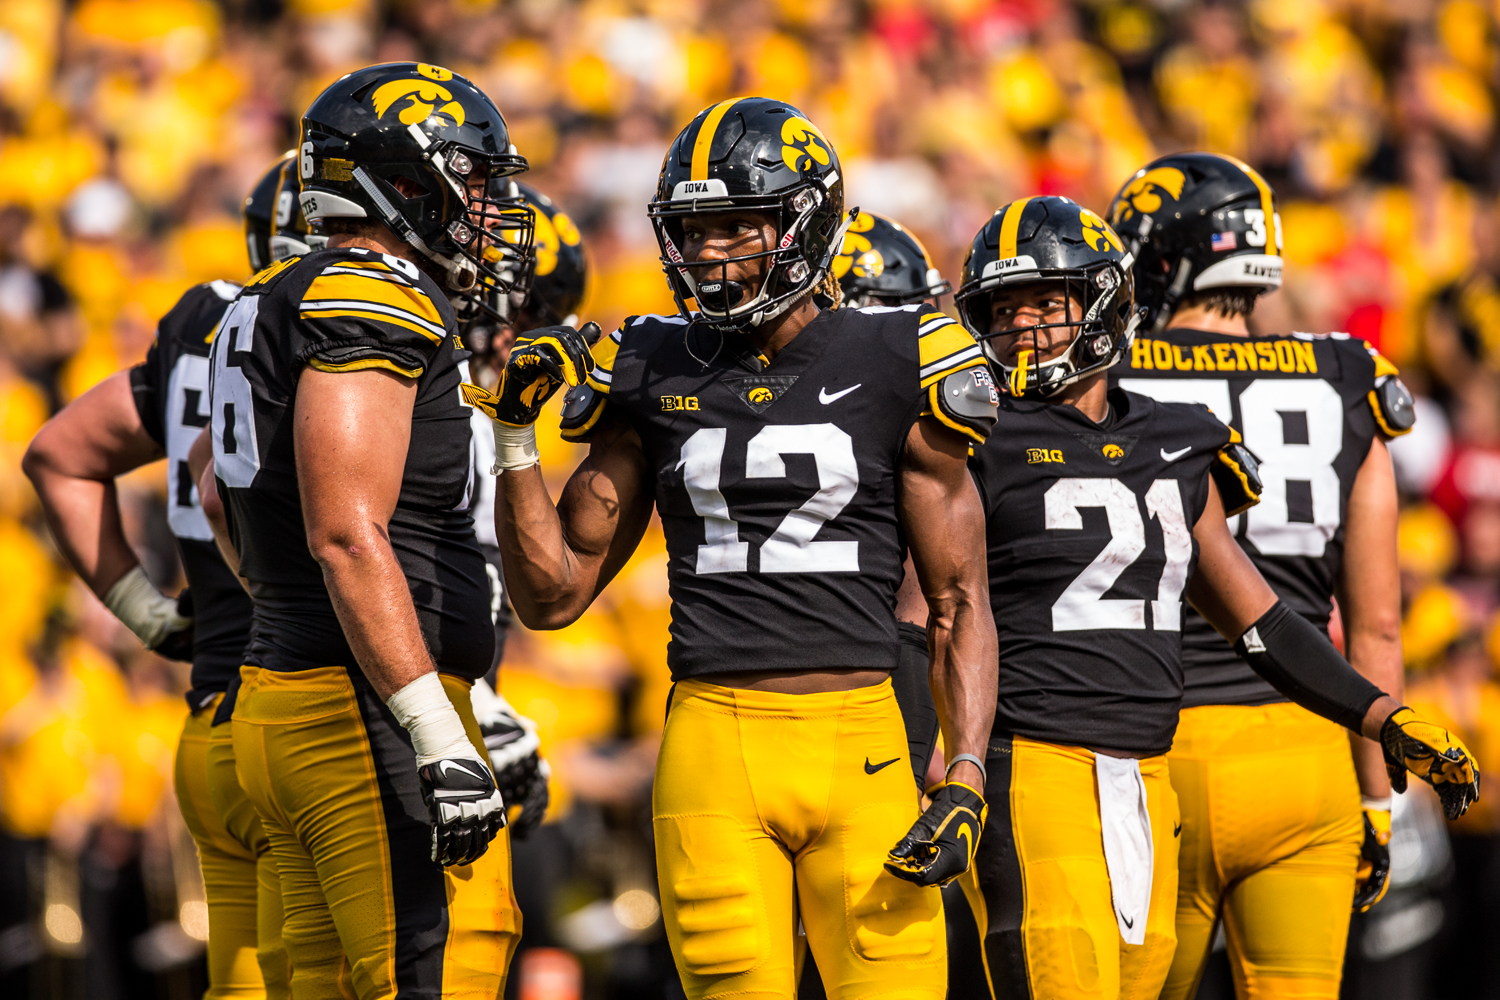 Iowa wide receiver Brandon Smith talks with teammates in the huddle during Iowa's game against Northern Illinois at Kinnick Stadium on Saturday, September 1, 2018. during Iowa's game against Northern Illinois at Kinnick Stadium on Saturday, September 1, 2018. The Hawkeyes defeated the Huskies 33-7.